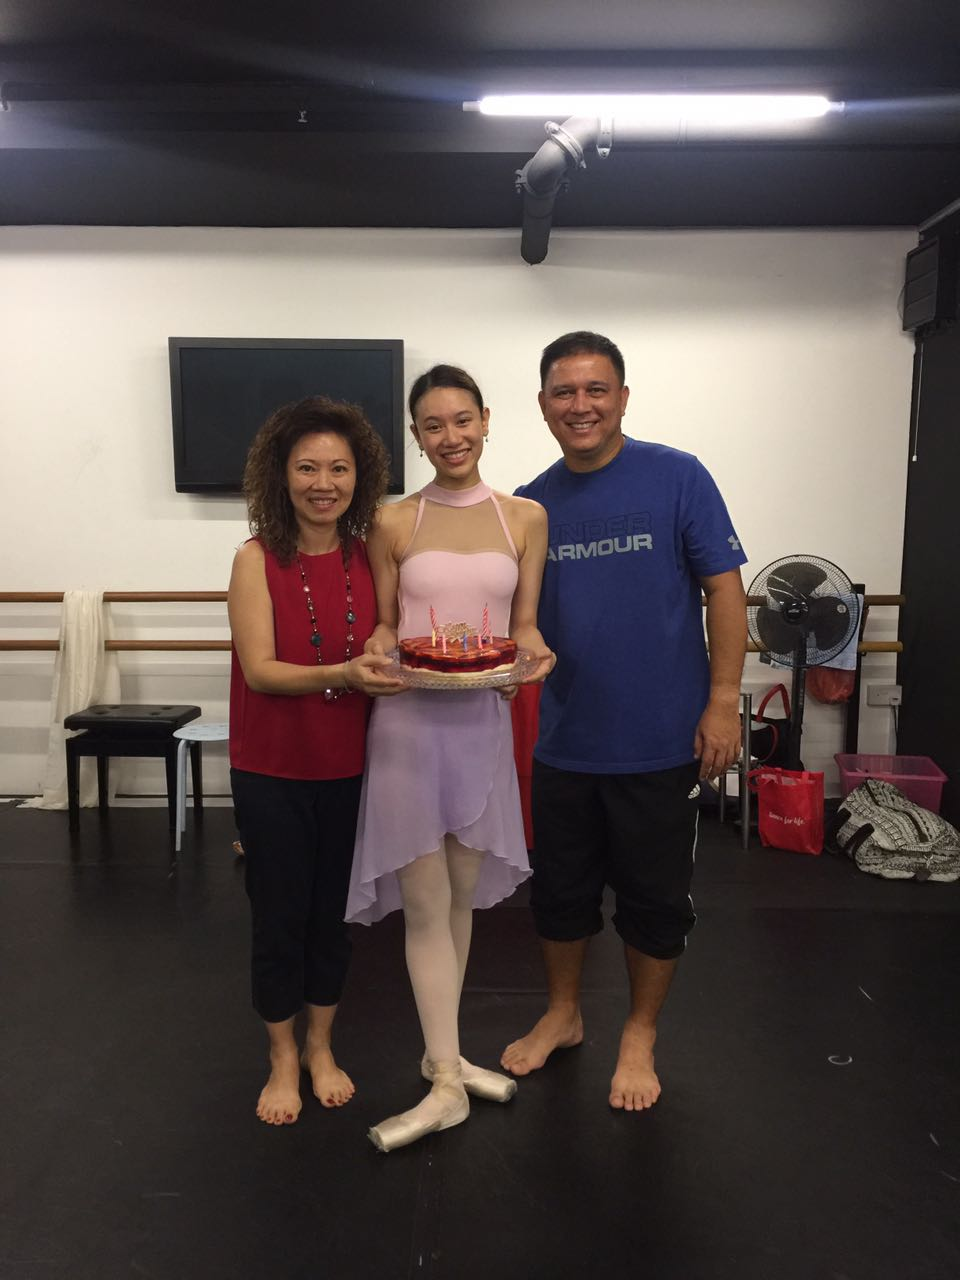 Abigail gets a surprise birthday cake from aunt June Lee, director of The School of Dance, Singapore, and her husband Jeff Macpherson.